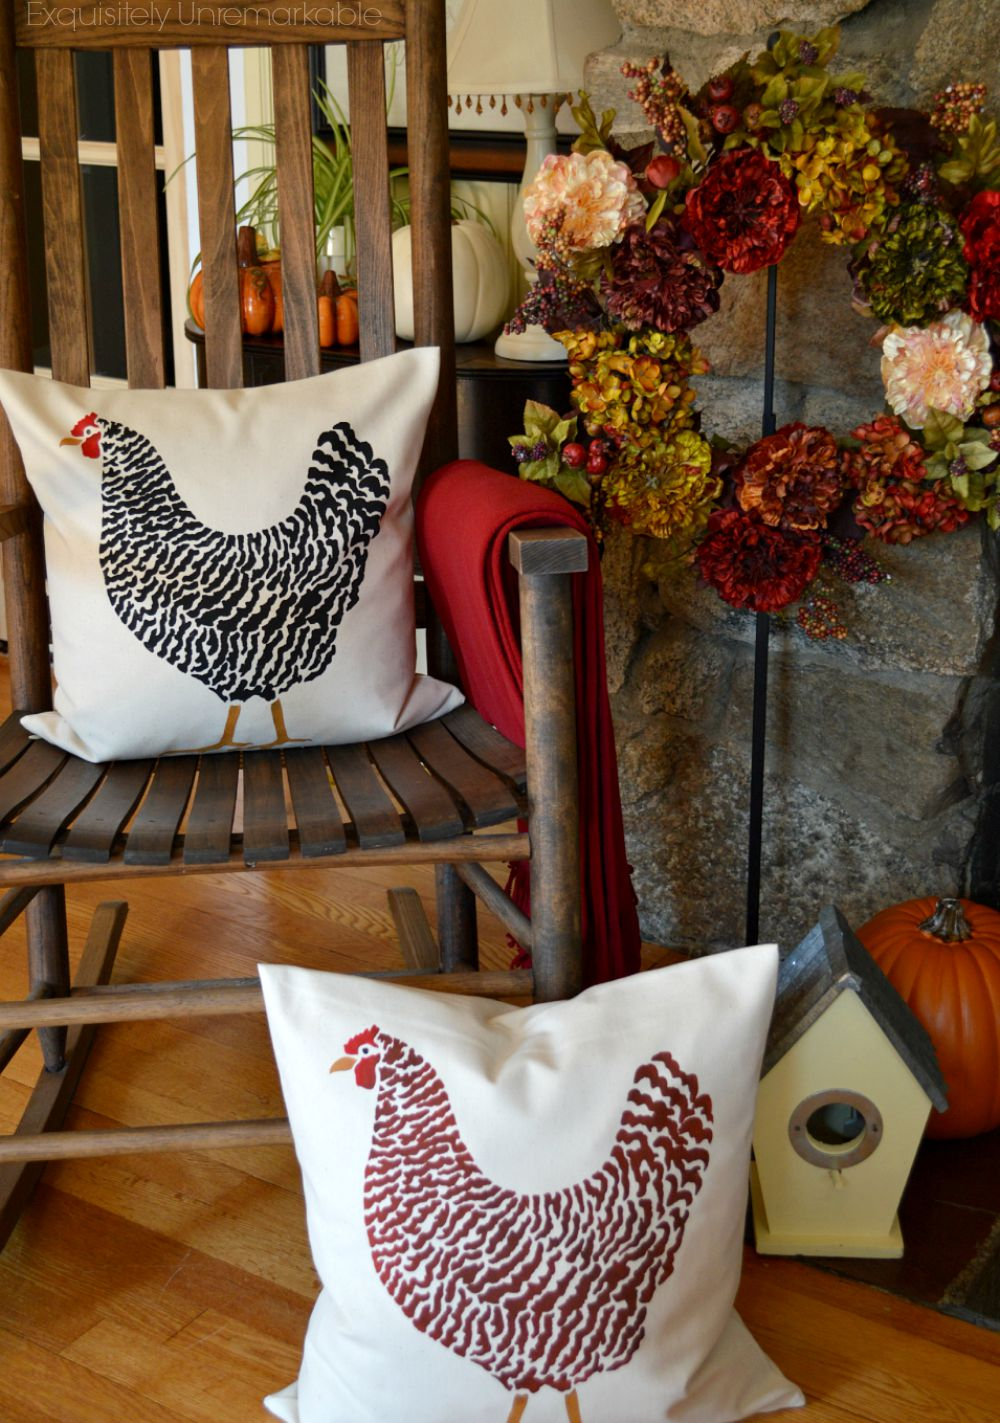 Chicken pillows on floor and rocking chair